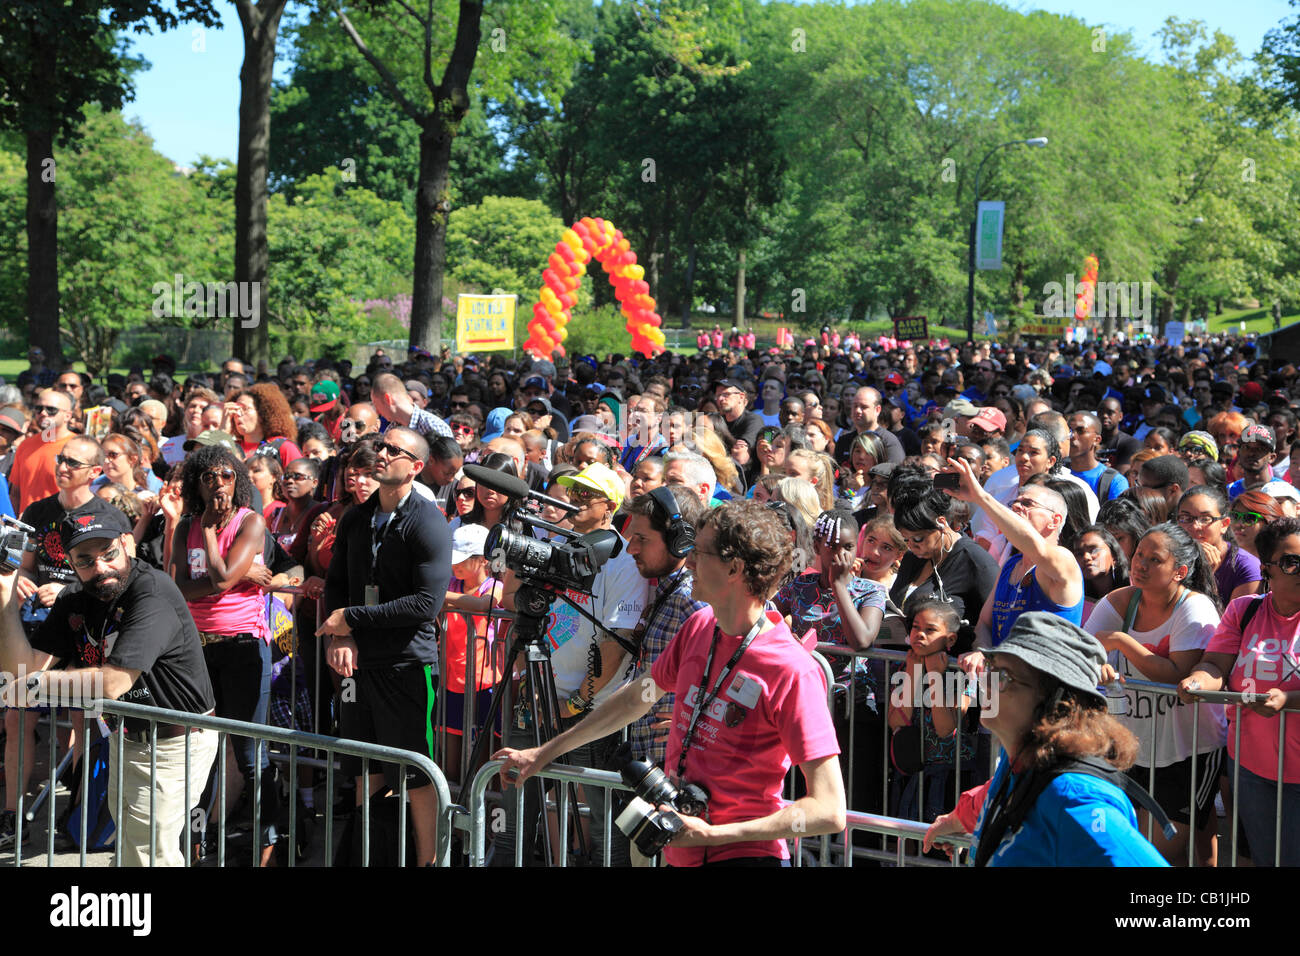 Crowds watch the 27th annual AIDS Walk New York, the world's largest HIV/AIDS fundraising event, Central Park, New York City, USA on Sunday, May 20th, 2012. Stock Photo